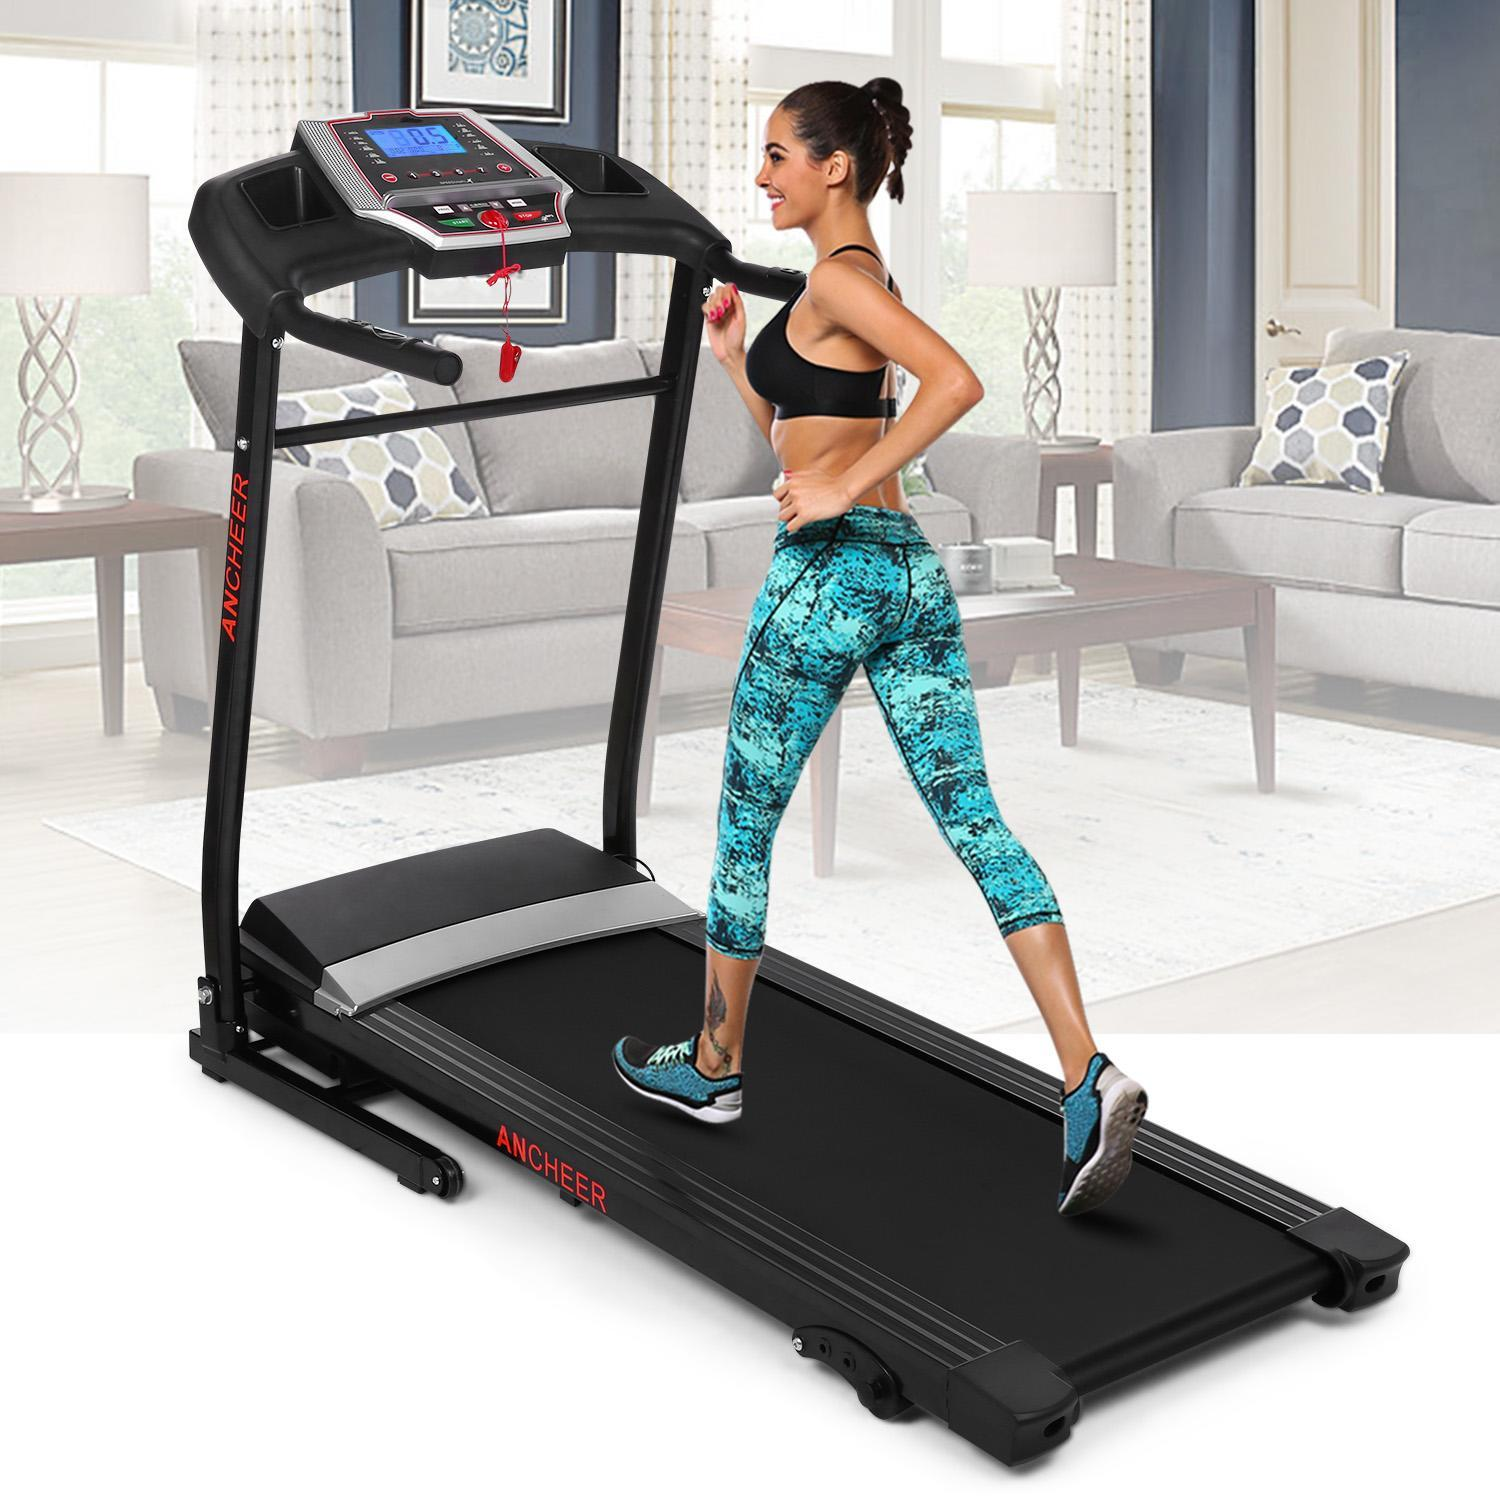 Lowest price ever! 2.25HP Folding Electric Treadmill With Comfortable Cushioning For Gym Home HFON